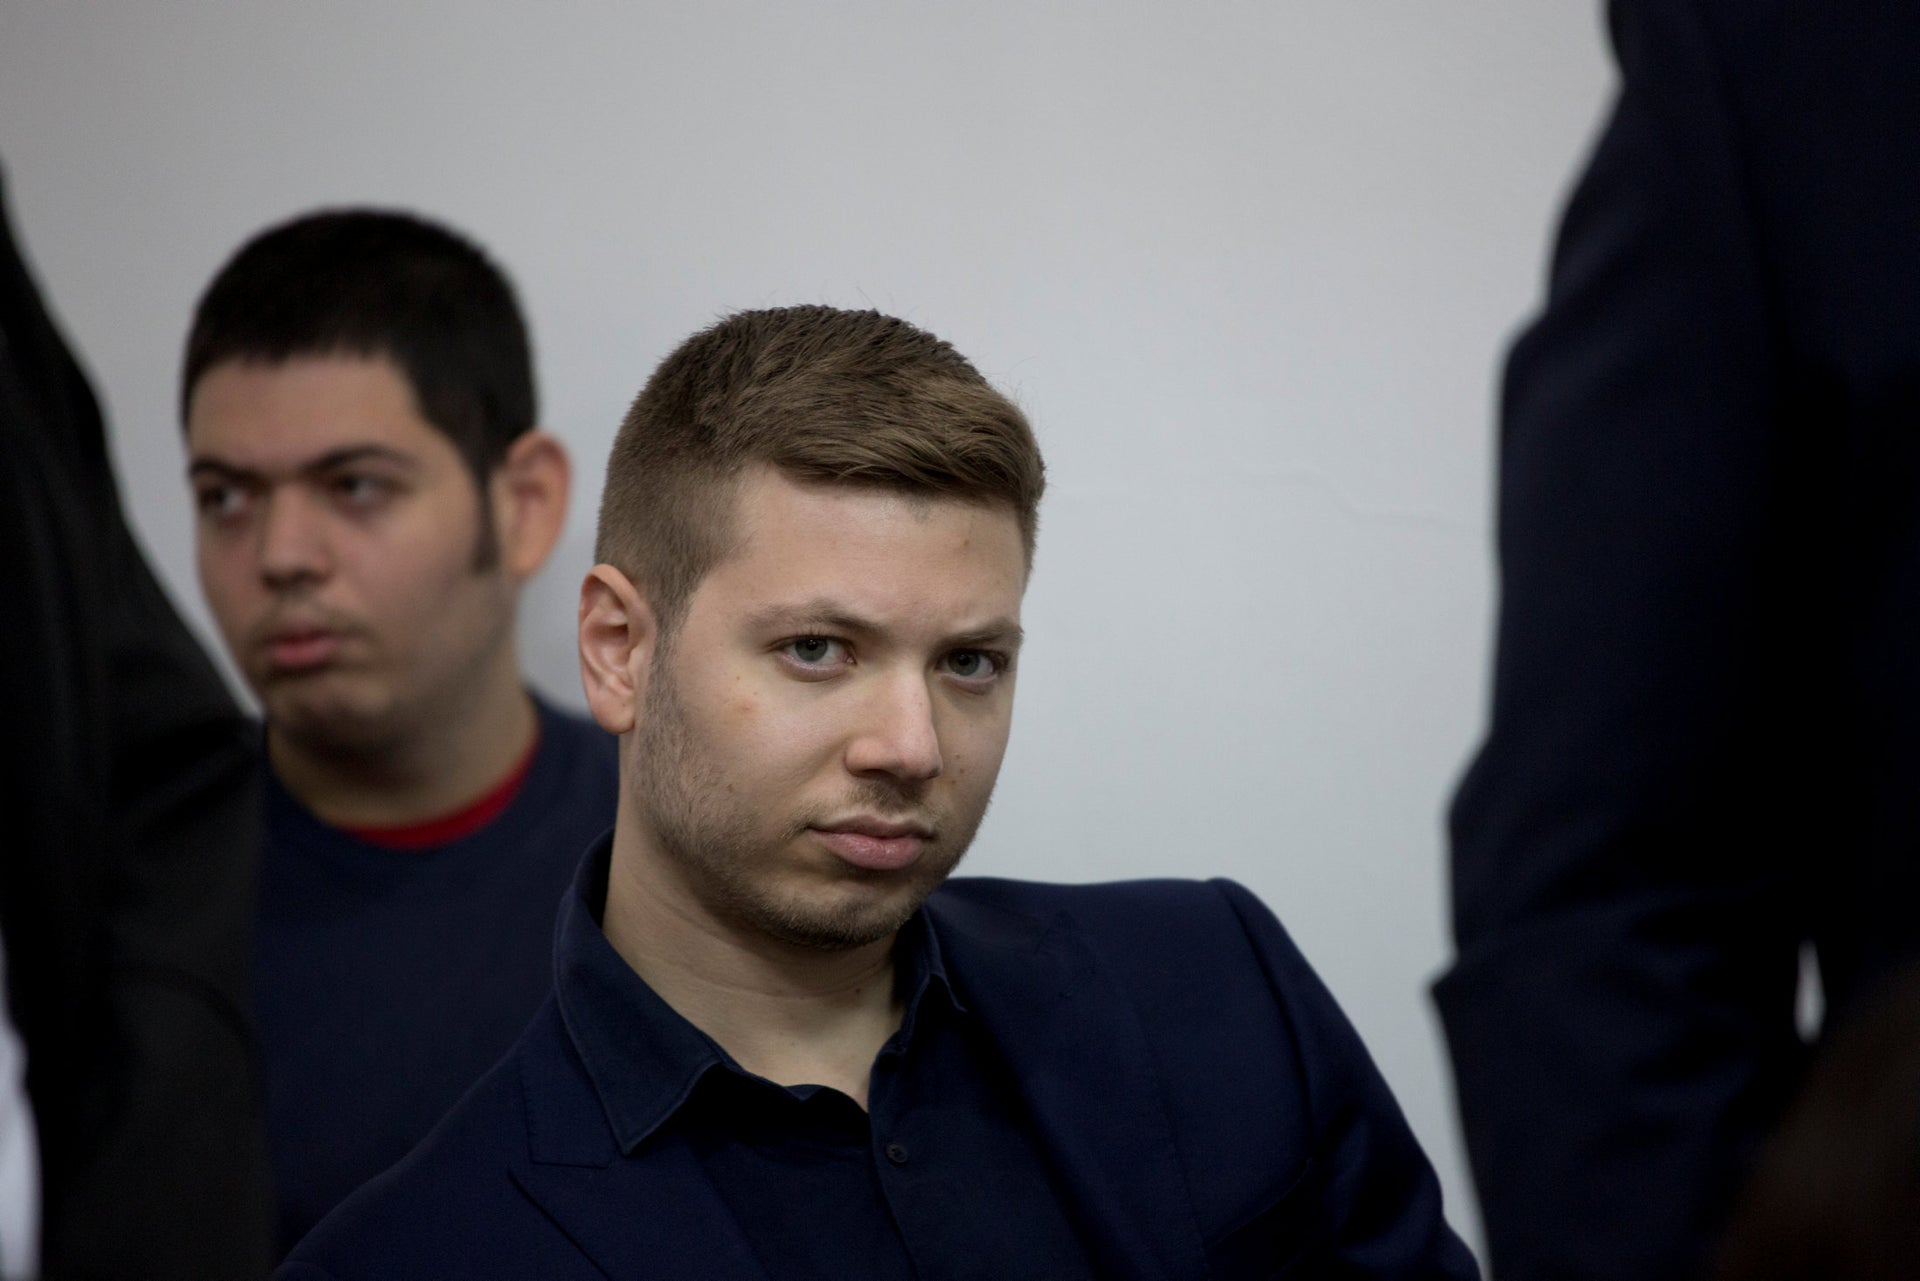 Yair Netanyahu testifying in court after suing an activist for libel, Tel Aviv, October 12, 2018